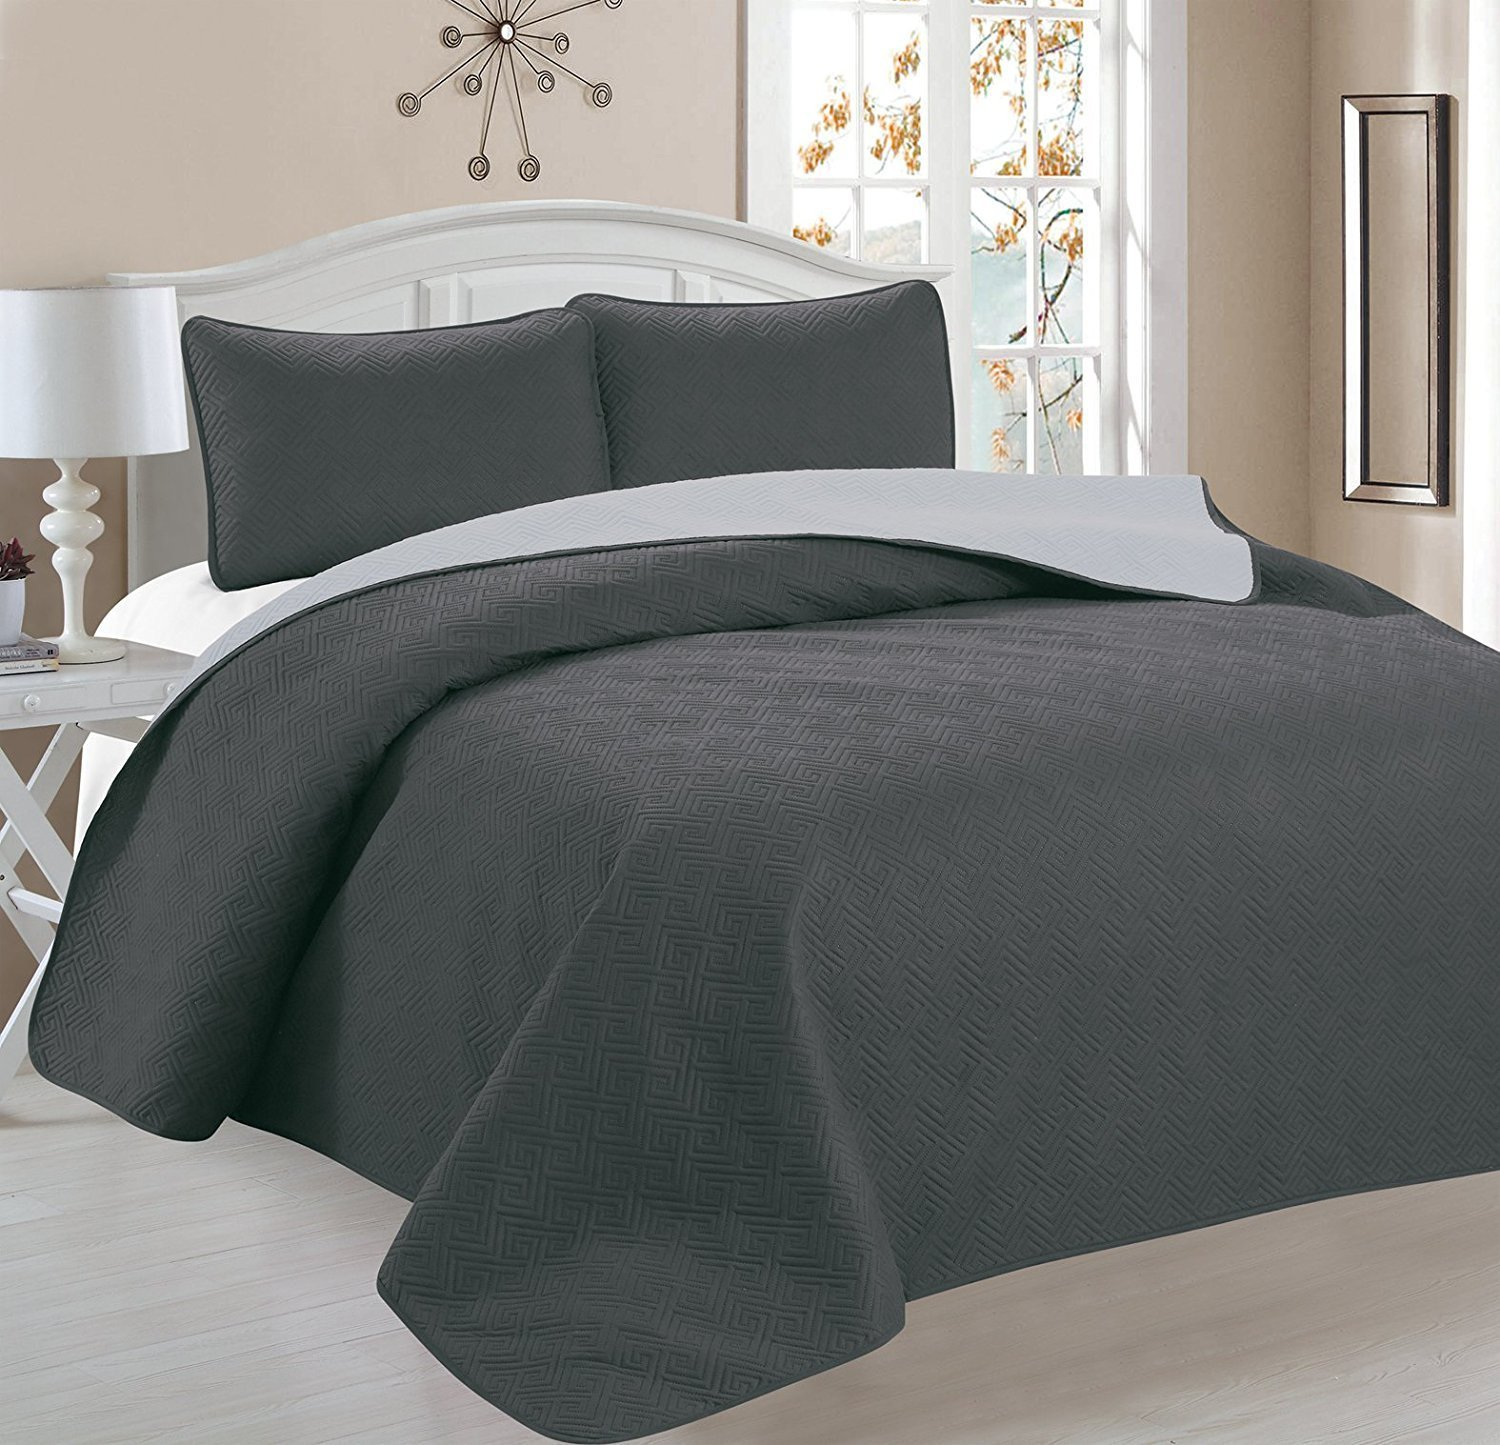 Deluxe Greek Design Reversible 3pc Coverlet Quilt Set BedSpread � KING Size � Grey Silver by